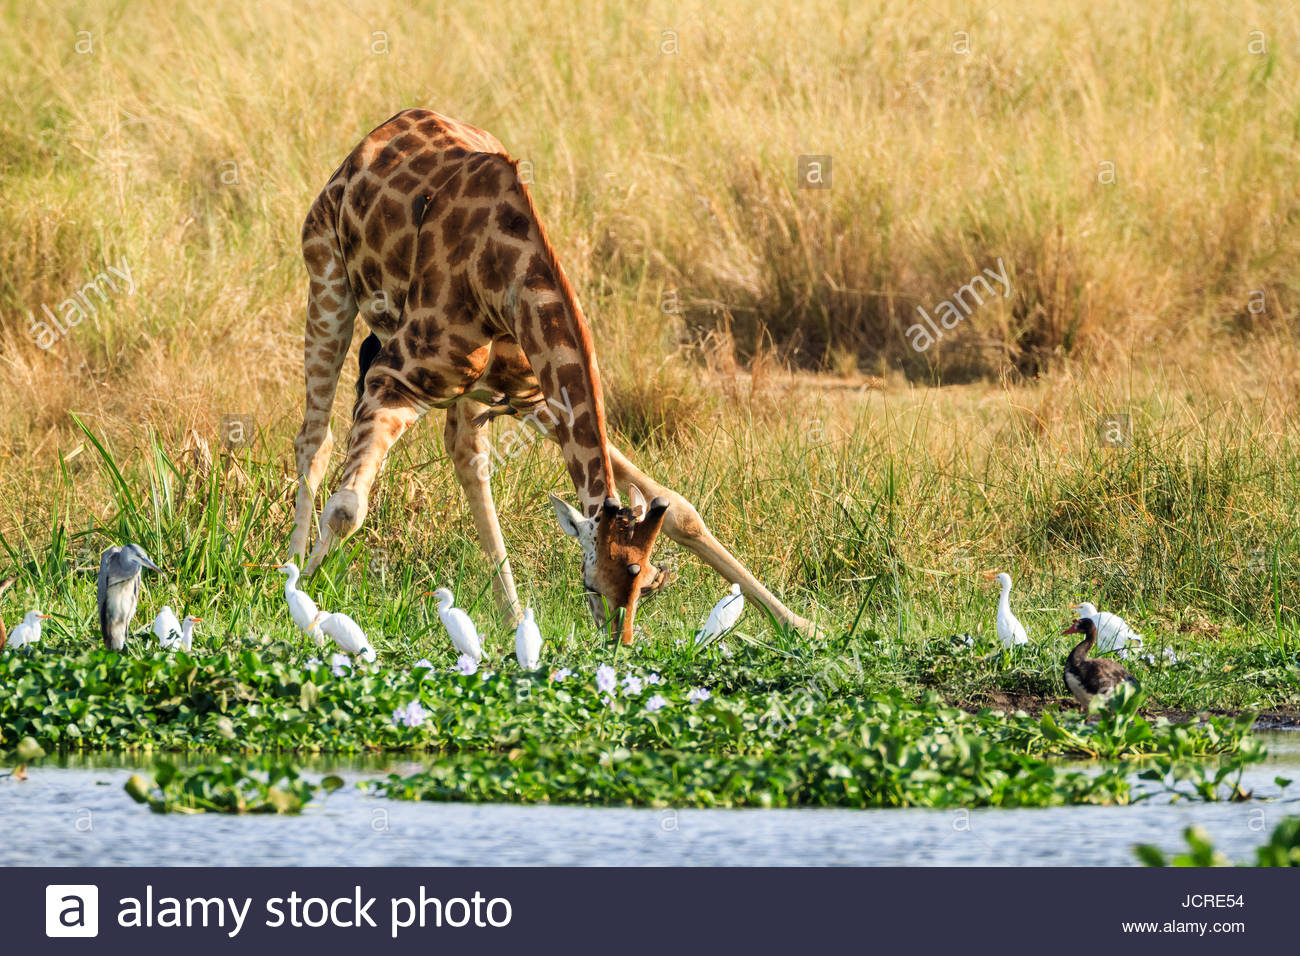 A Rothschild's giraffe, Giraffa camelopardalis rothschildi, drinks at the water's edge surrounded by water - Stock Image